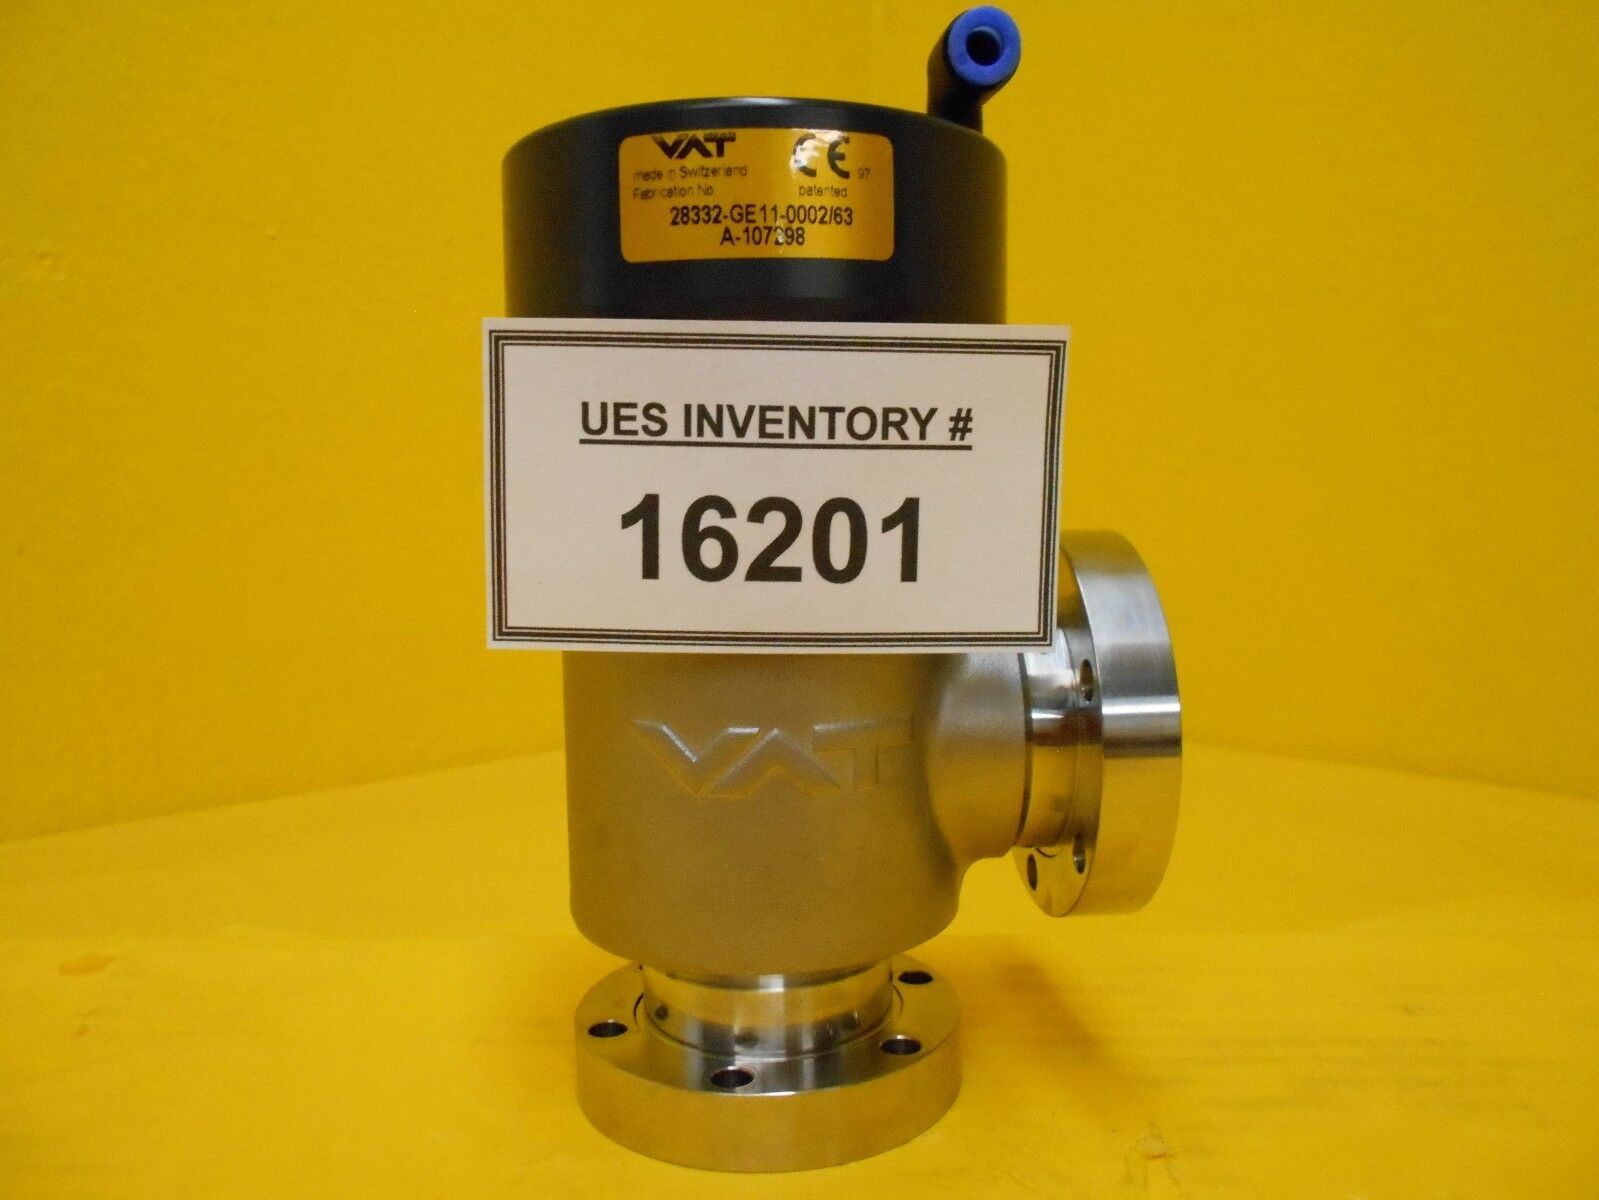 VAT 28332-GE11-0002 Pneumatic Right Angle Vacuum Valve UHV Used Working